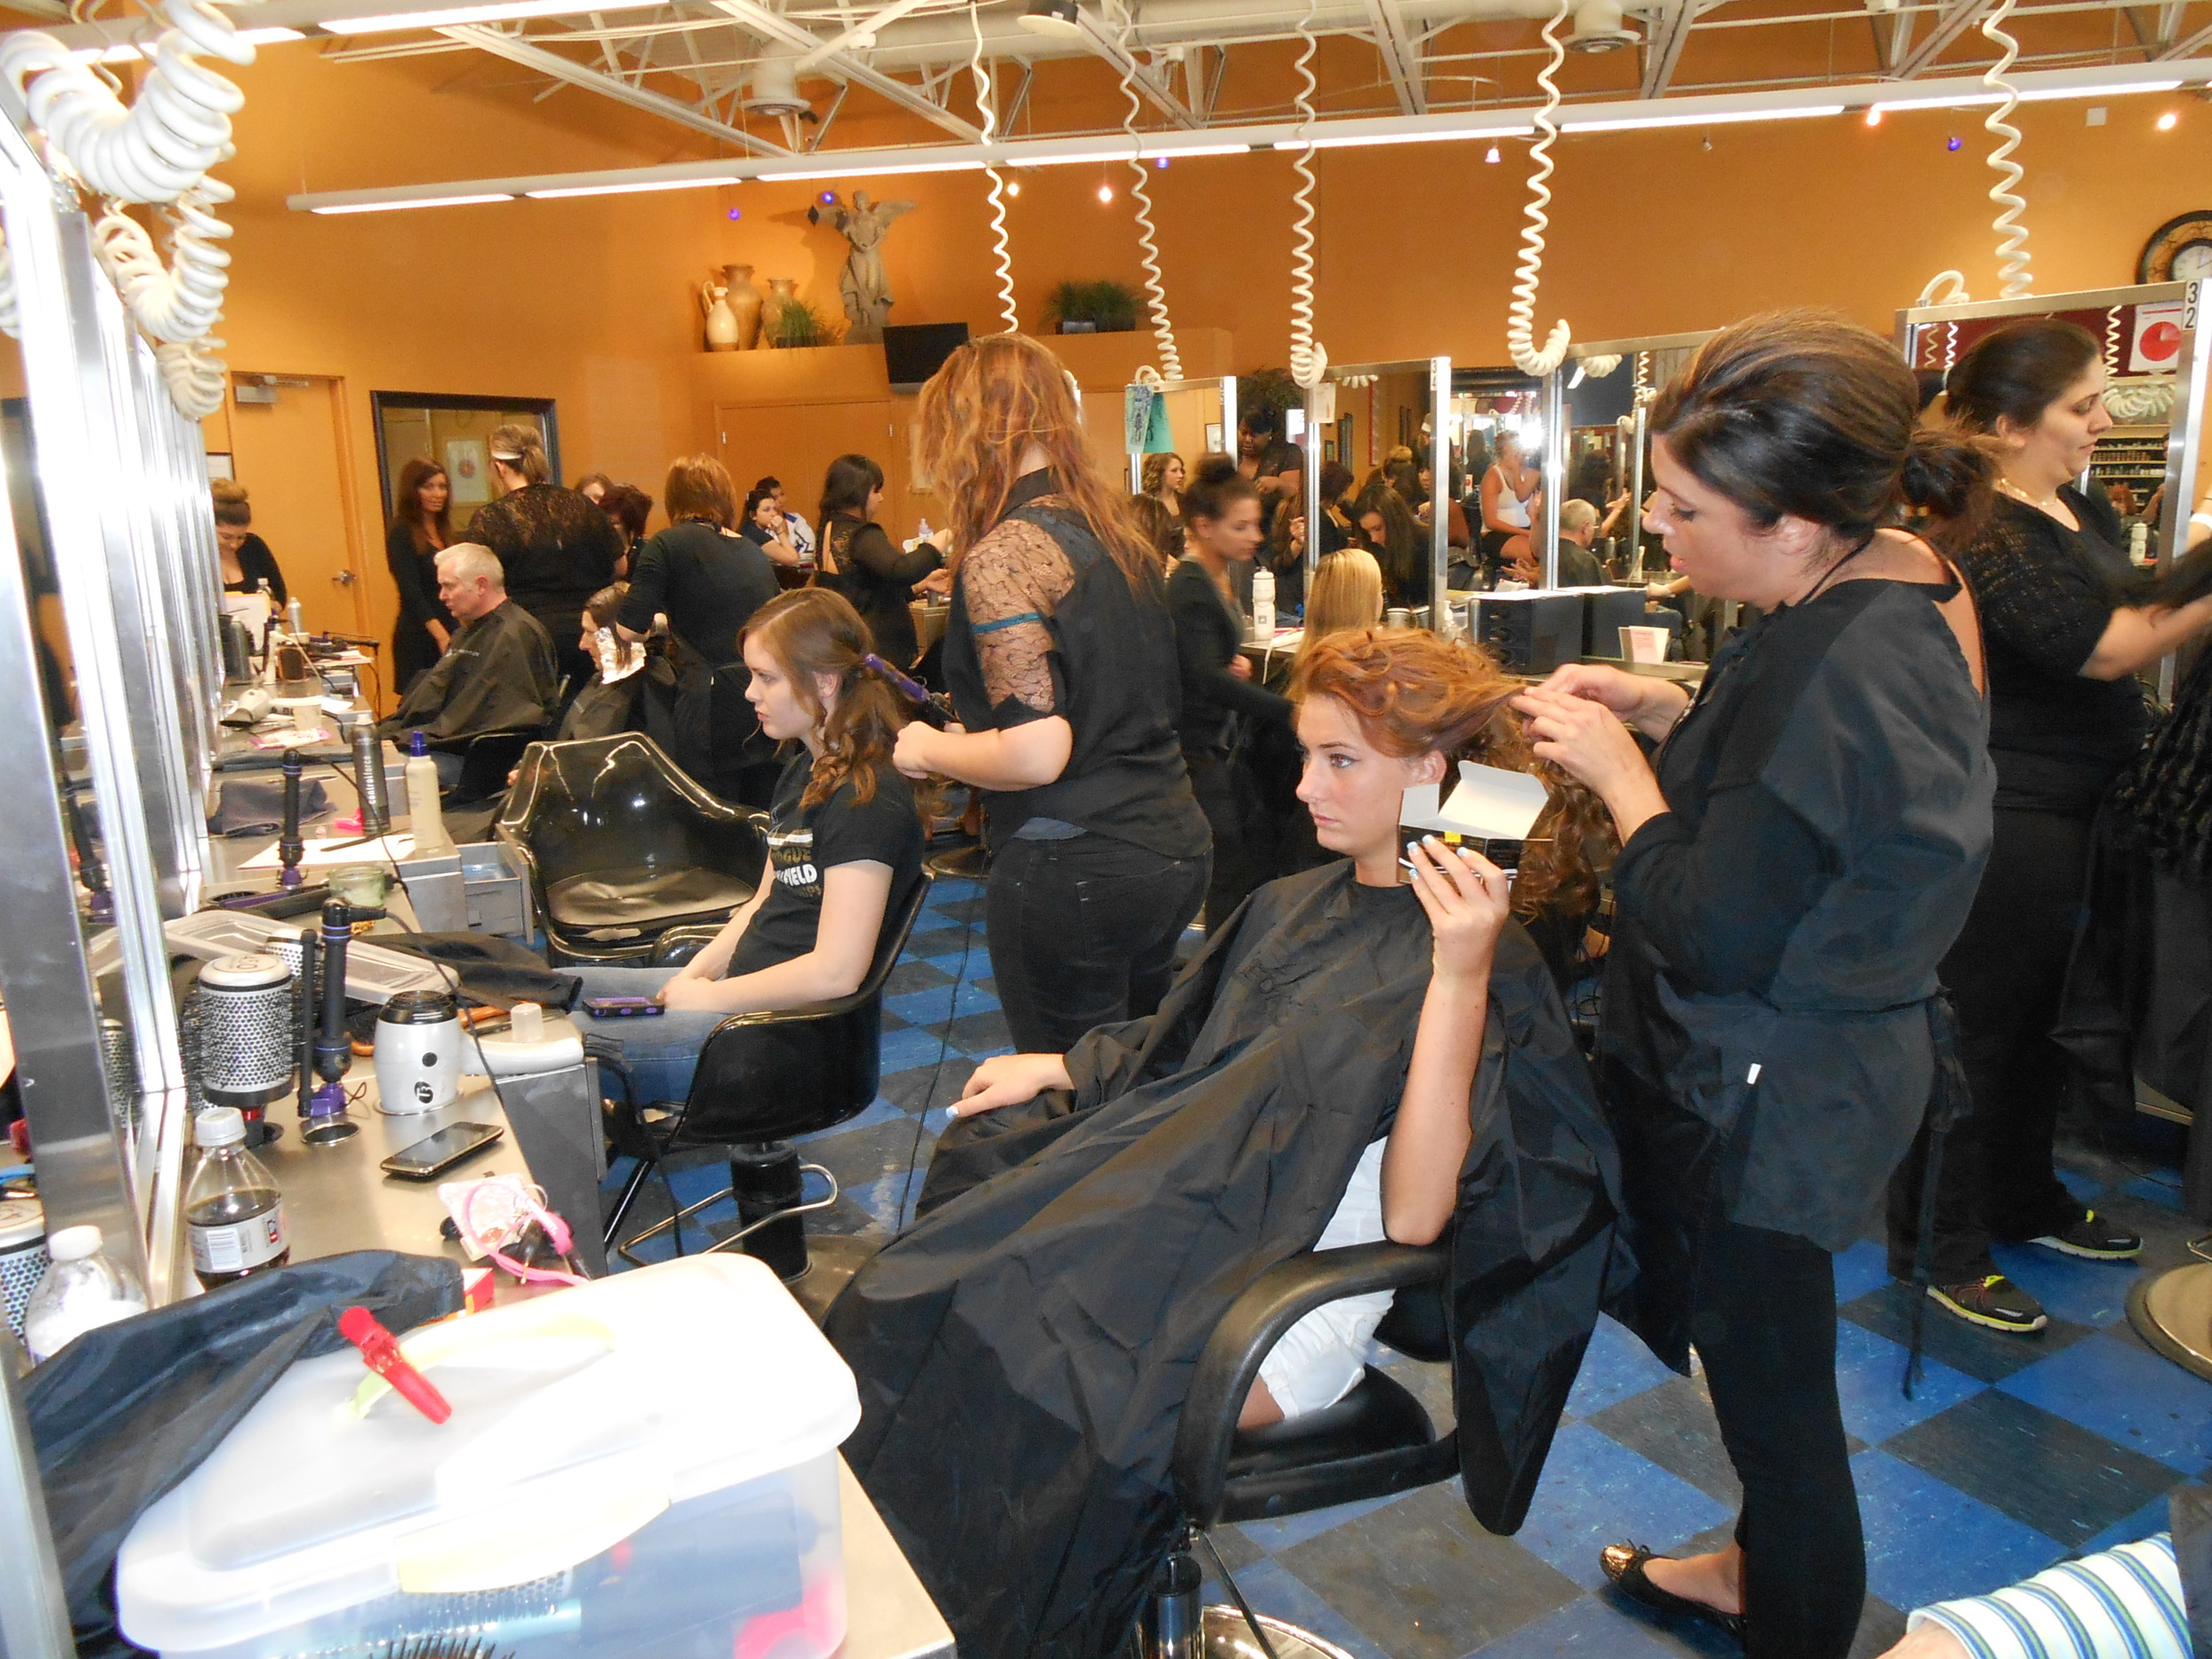 Students working on the clinic floor at Casal Aveda Institute